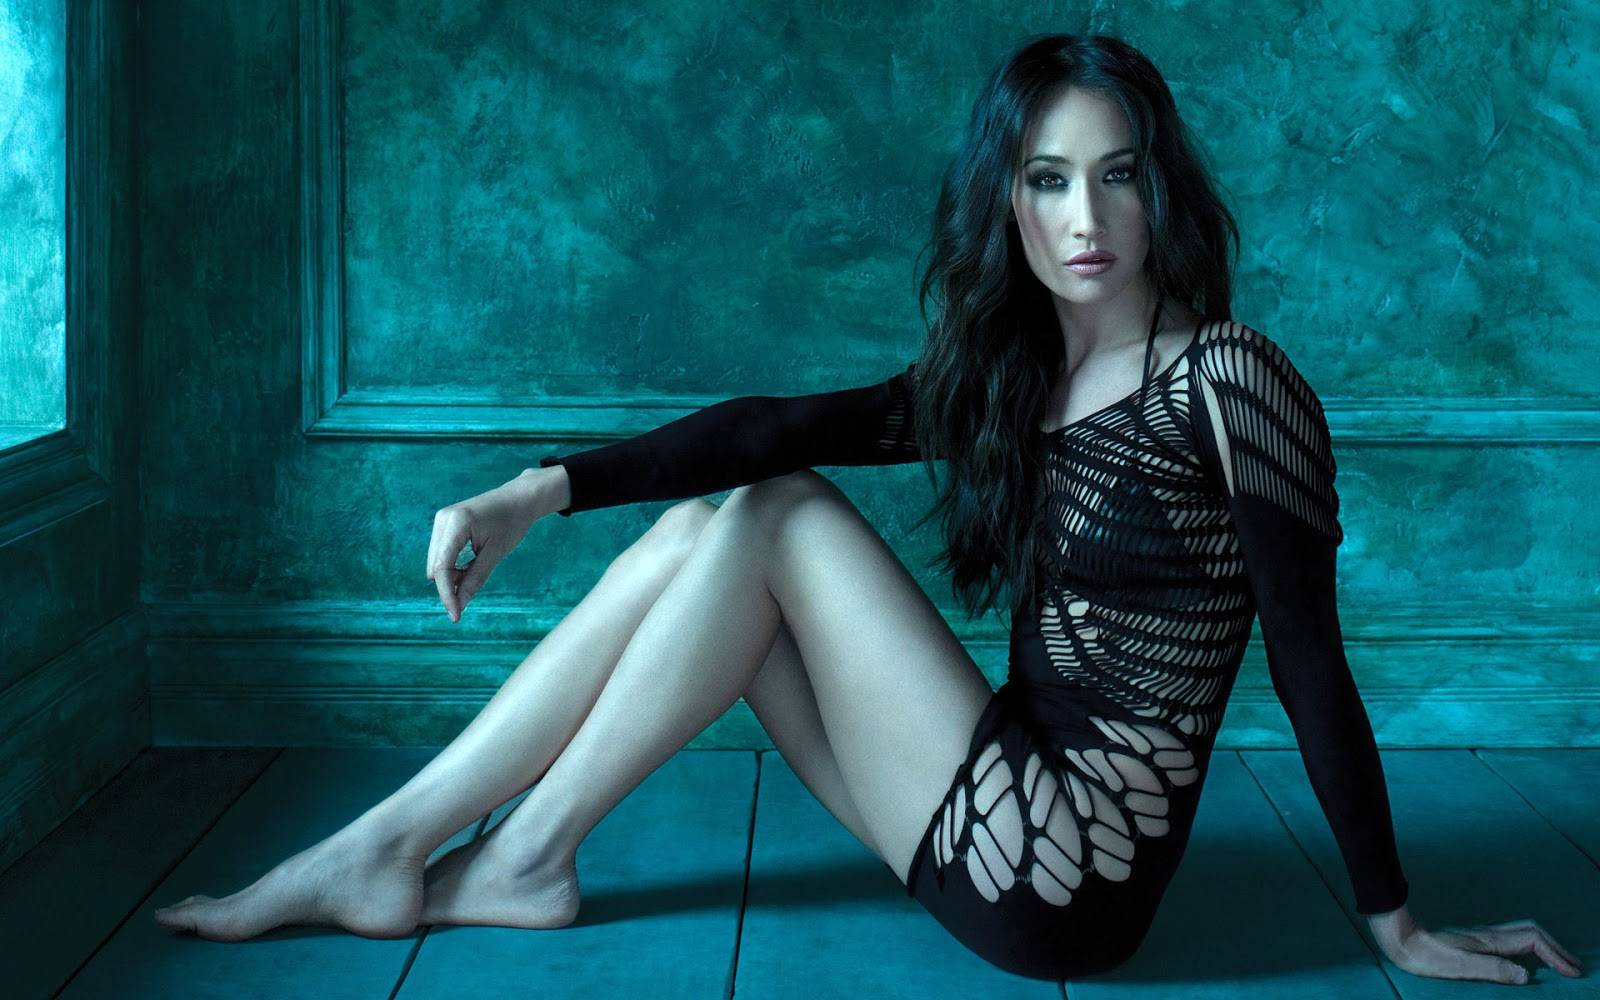 Maggie Q Wallpapers | Most beautiful places in the world | Download Free Wallpapers